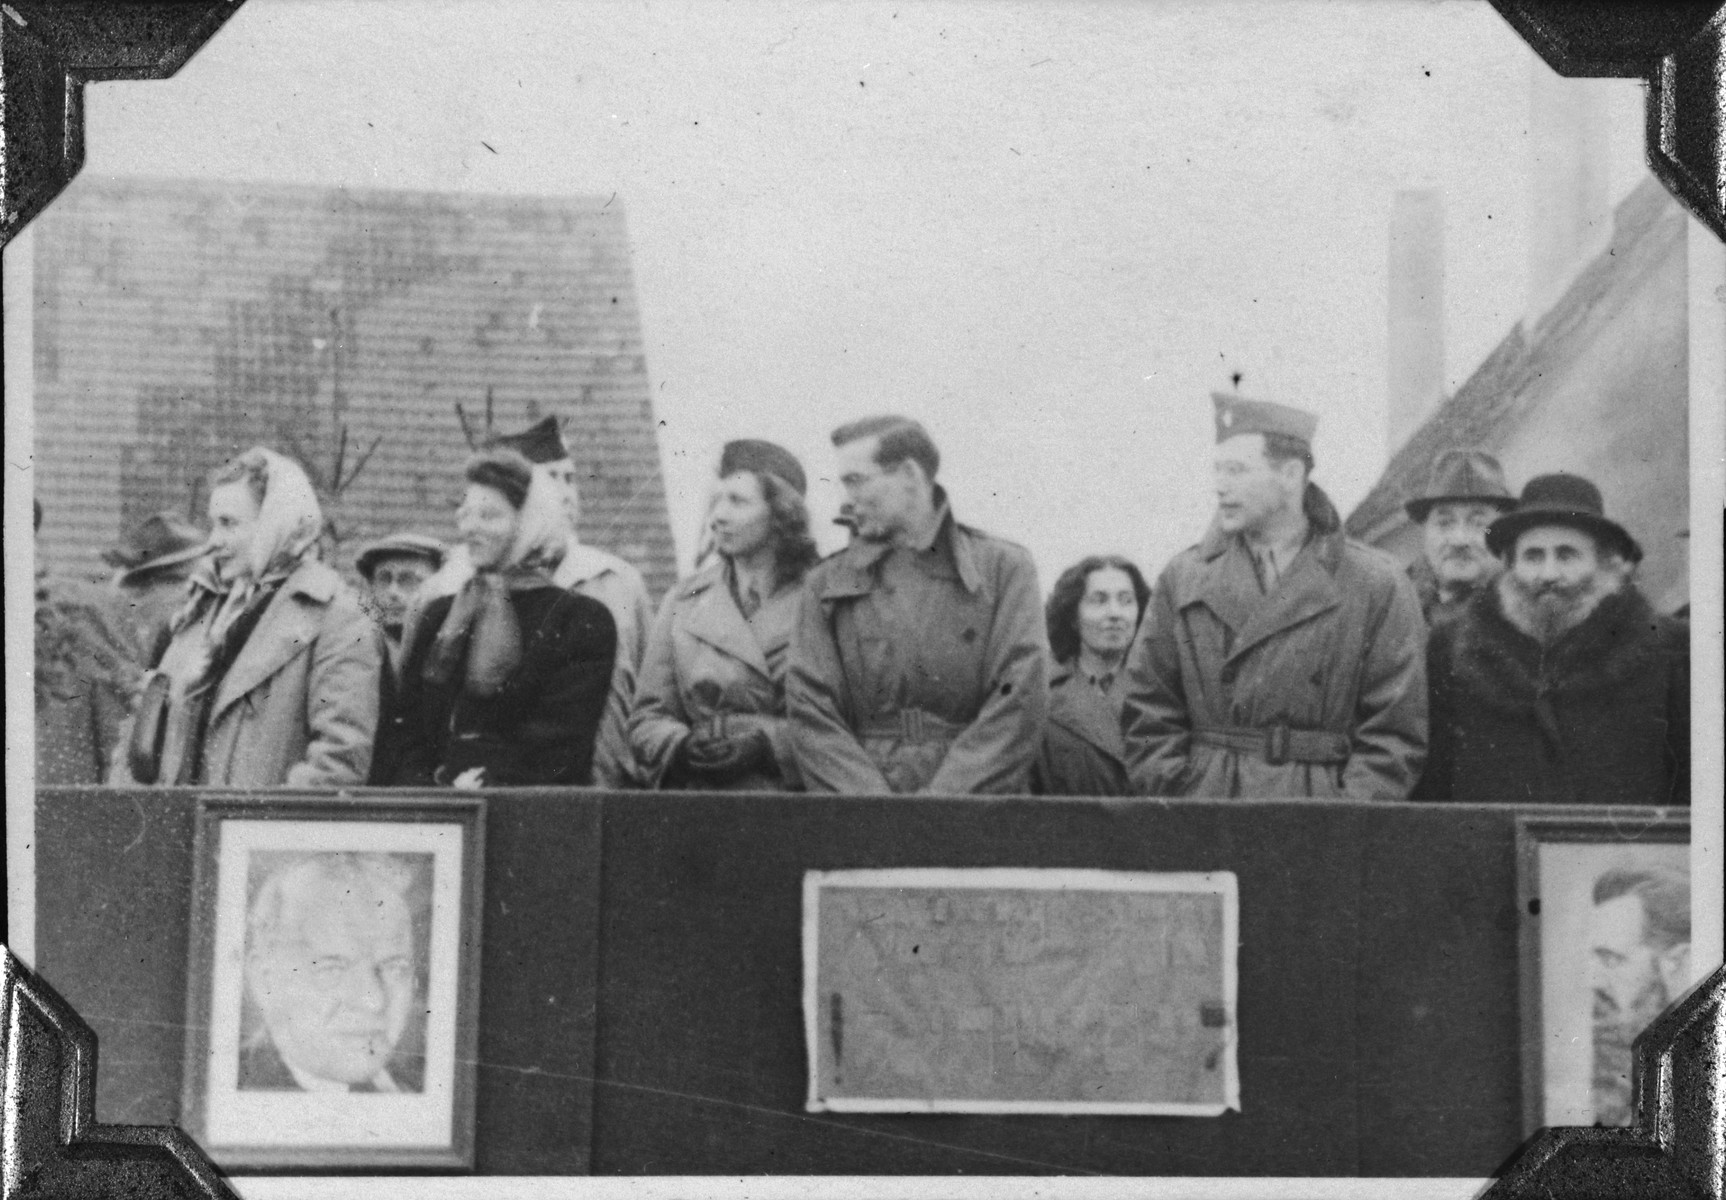 Tony and Marion Pritchard address a Zionist demonstration in the Windsheim displaced persons' camp.  Tony Pritchard addressed the crowd as head of the camp, and his wife Marion (who was not Jewish) provided simultaneous translation into Yiddish.